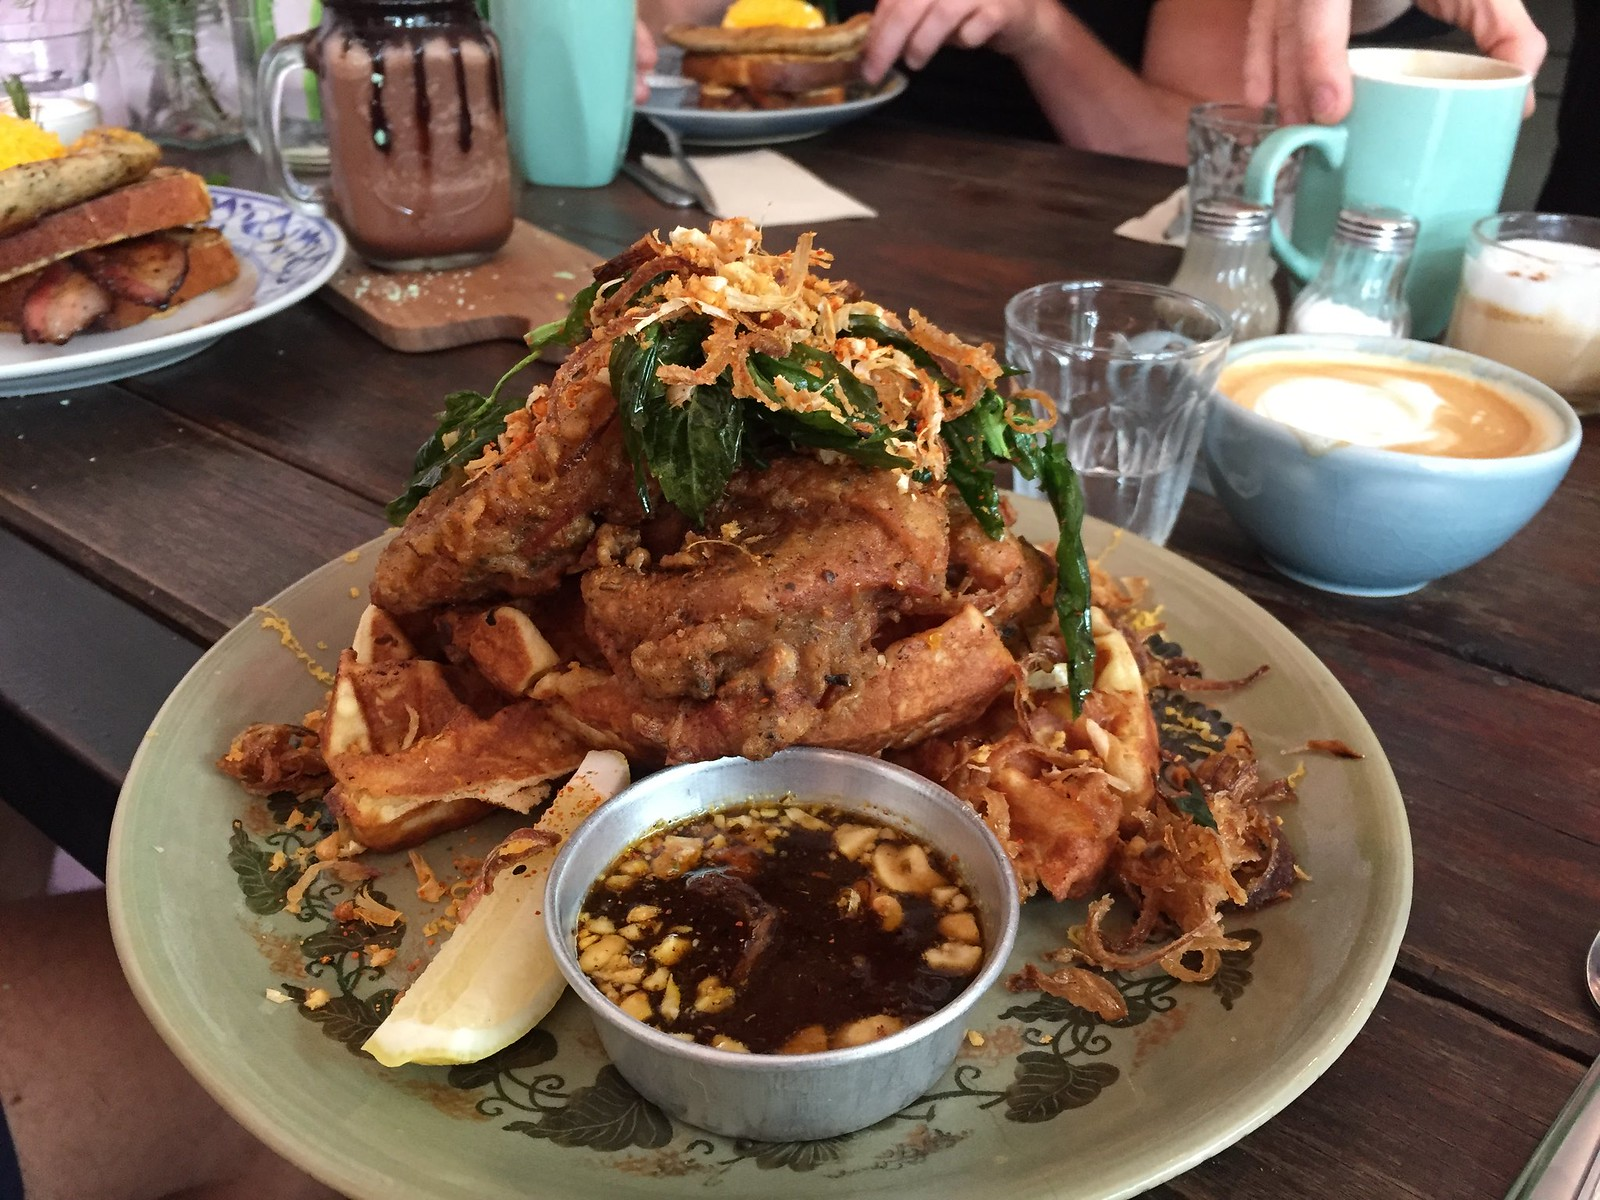 Waffles with Fried chicken at Rustic & Blue